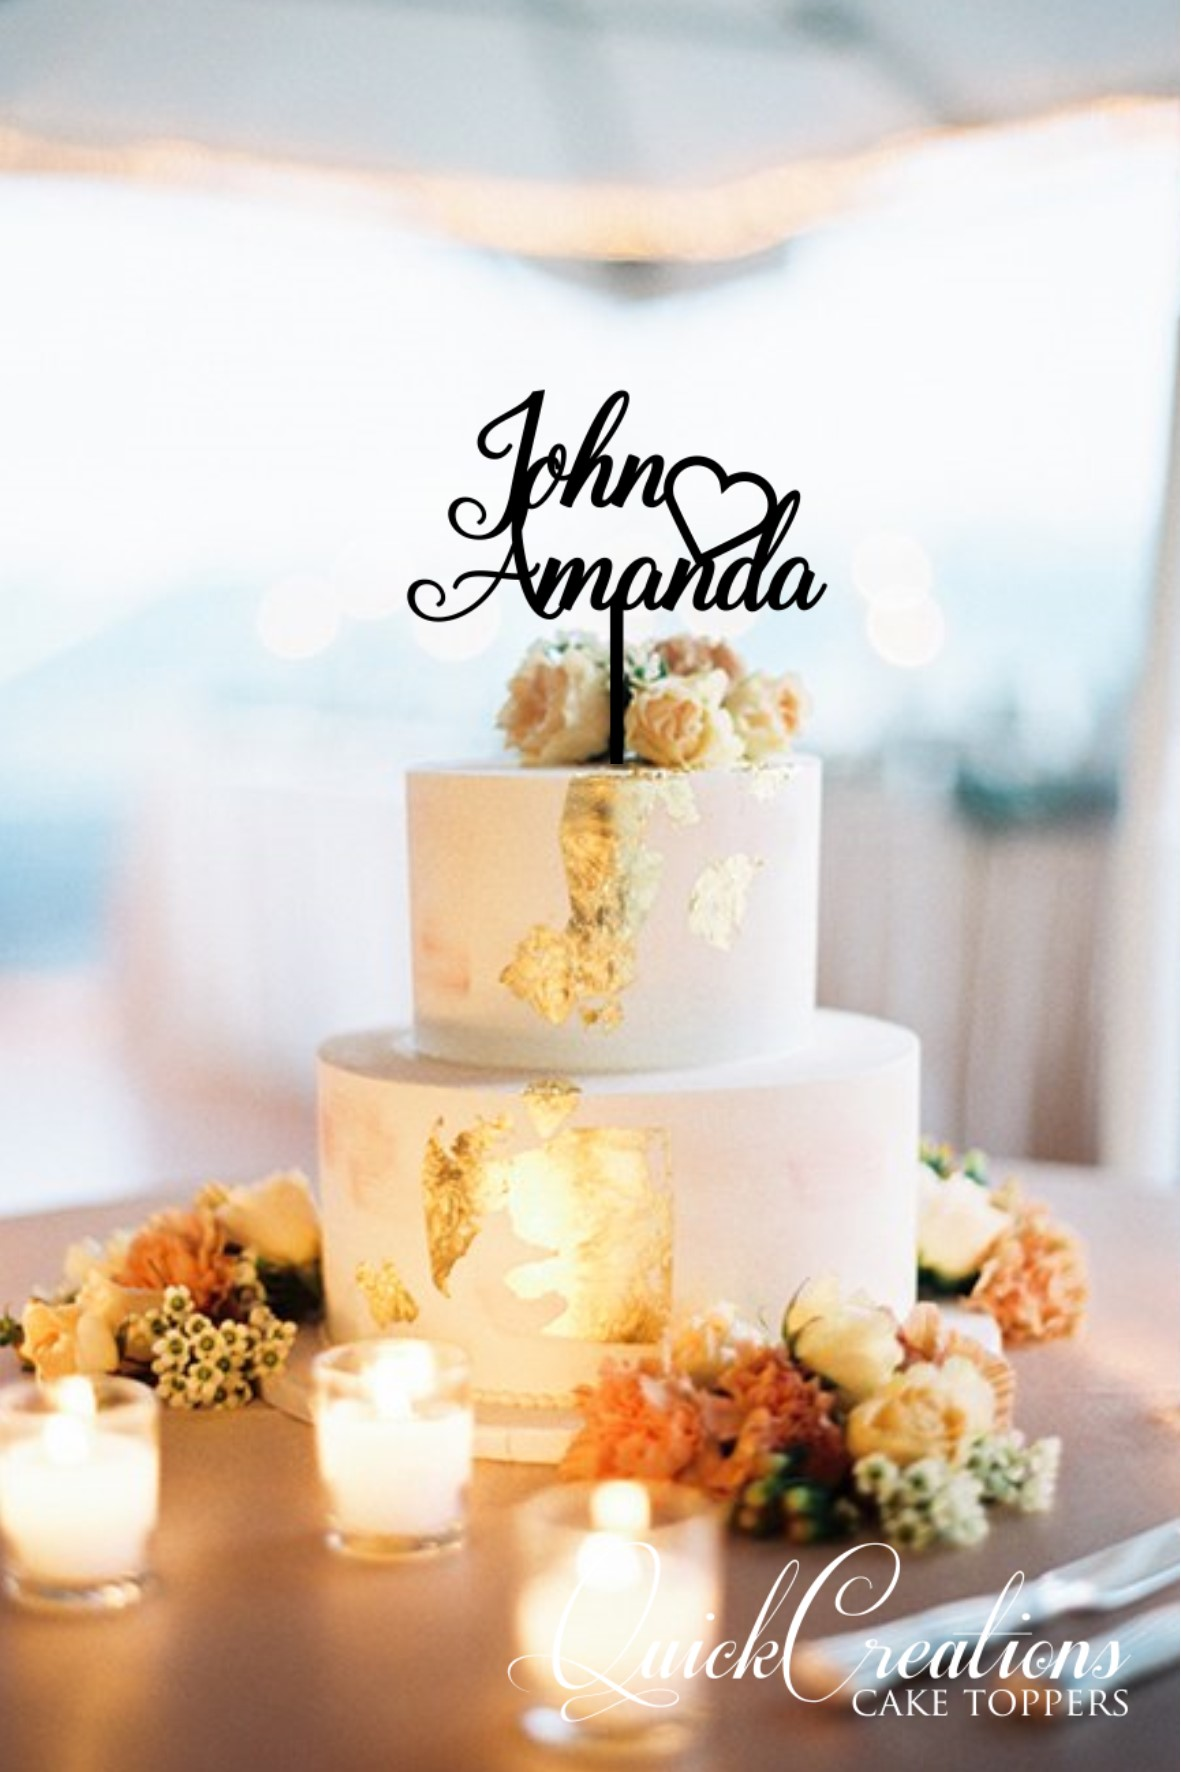 Quick Creations Cake Topper - John Heart Amanda